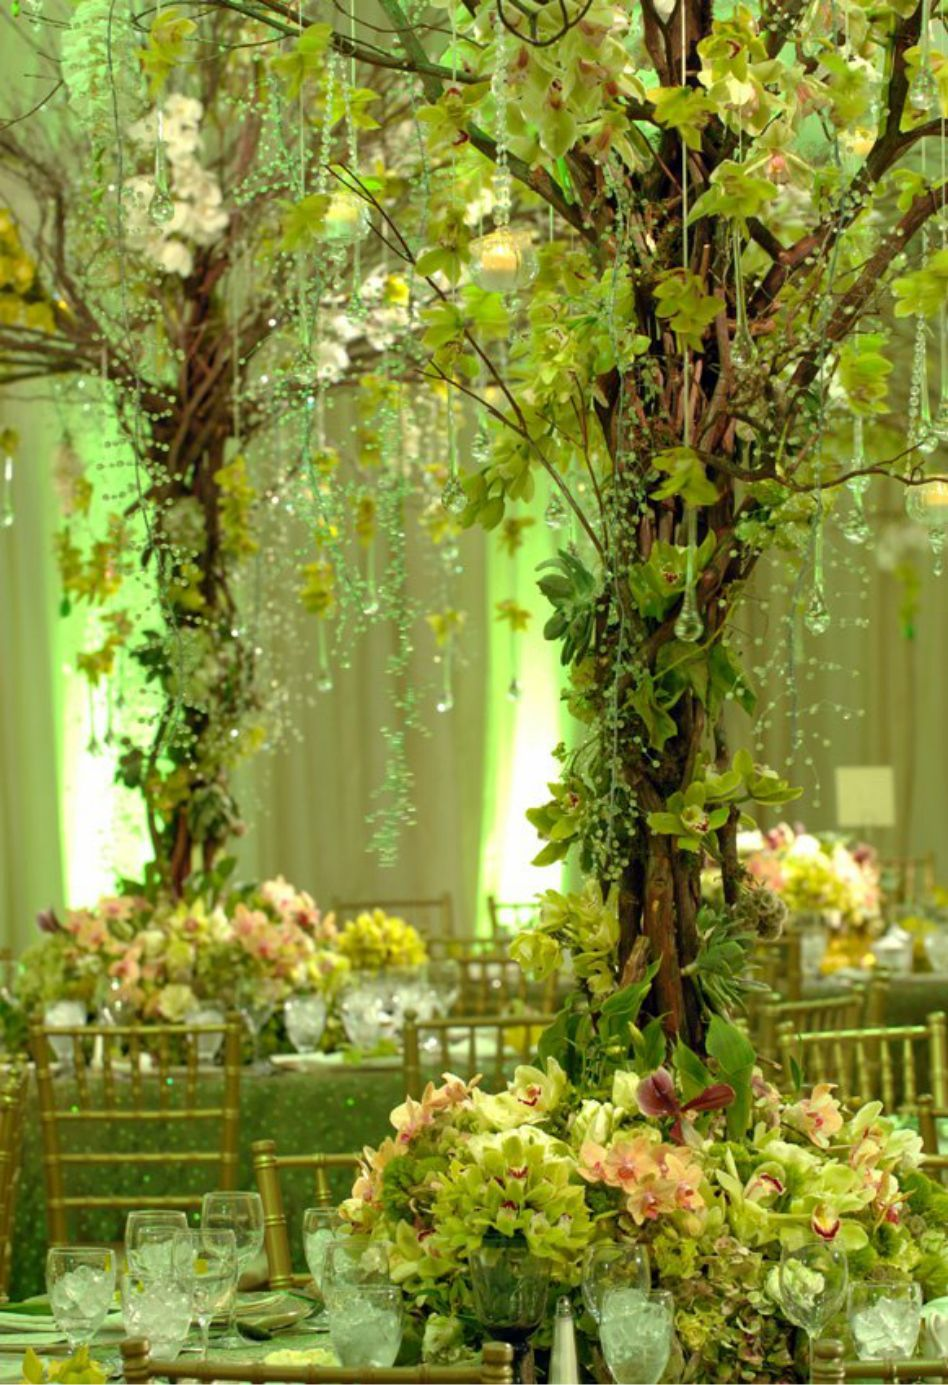 Forest theme reception california weddings at fresnoweddings forest theme reception california weddings at fresnoweddings californiaweddings junglespirit Images